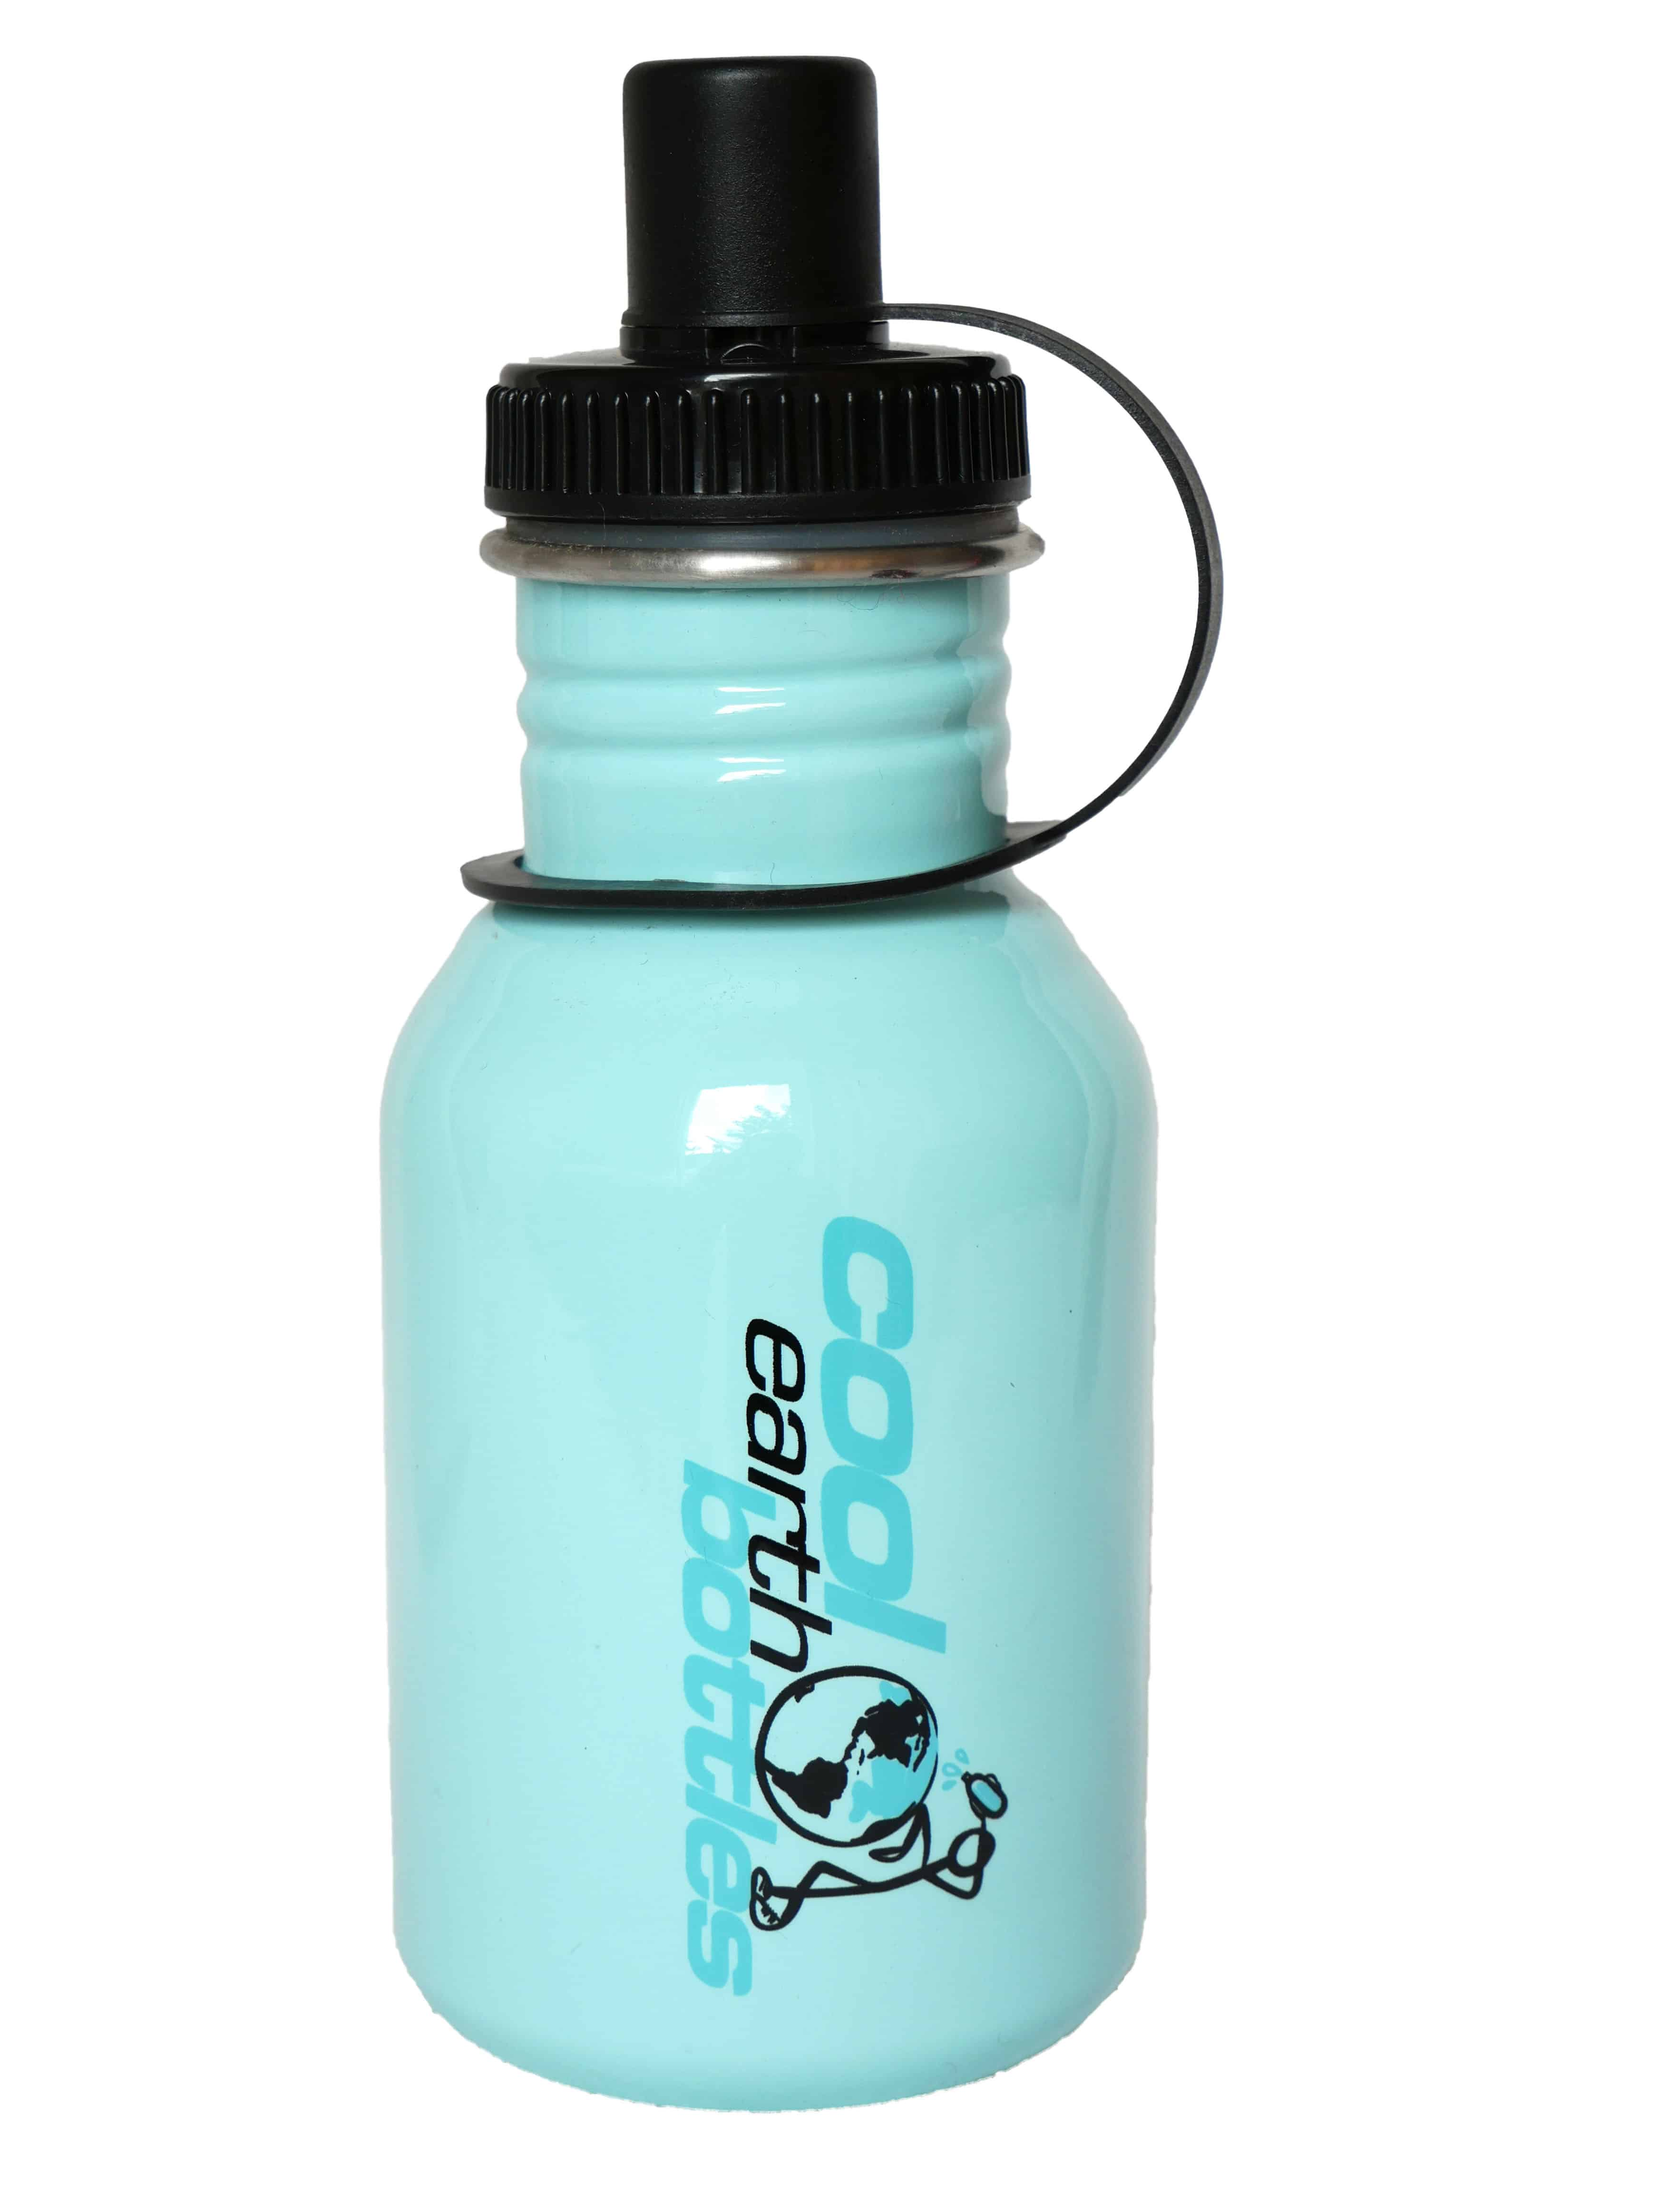 350ml Sports Stainless Steel Water Bottle – Blue